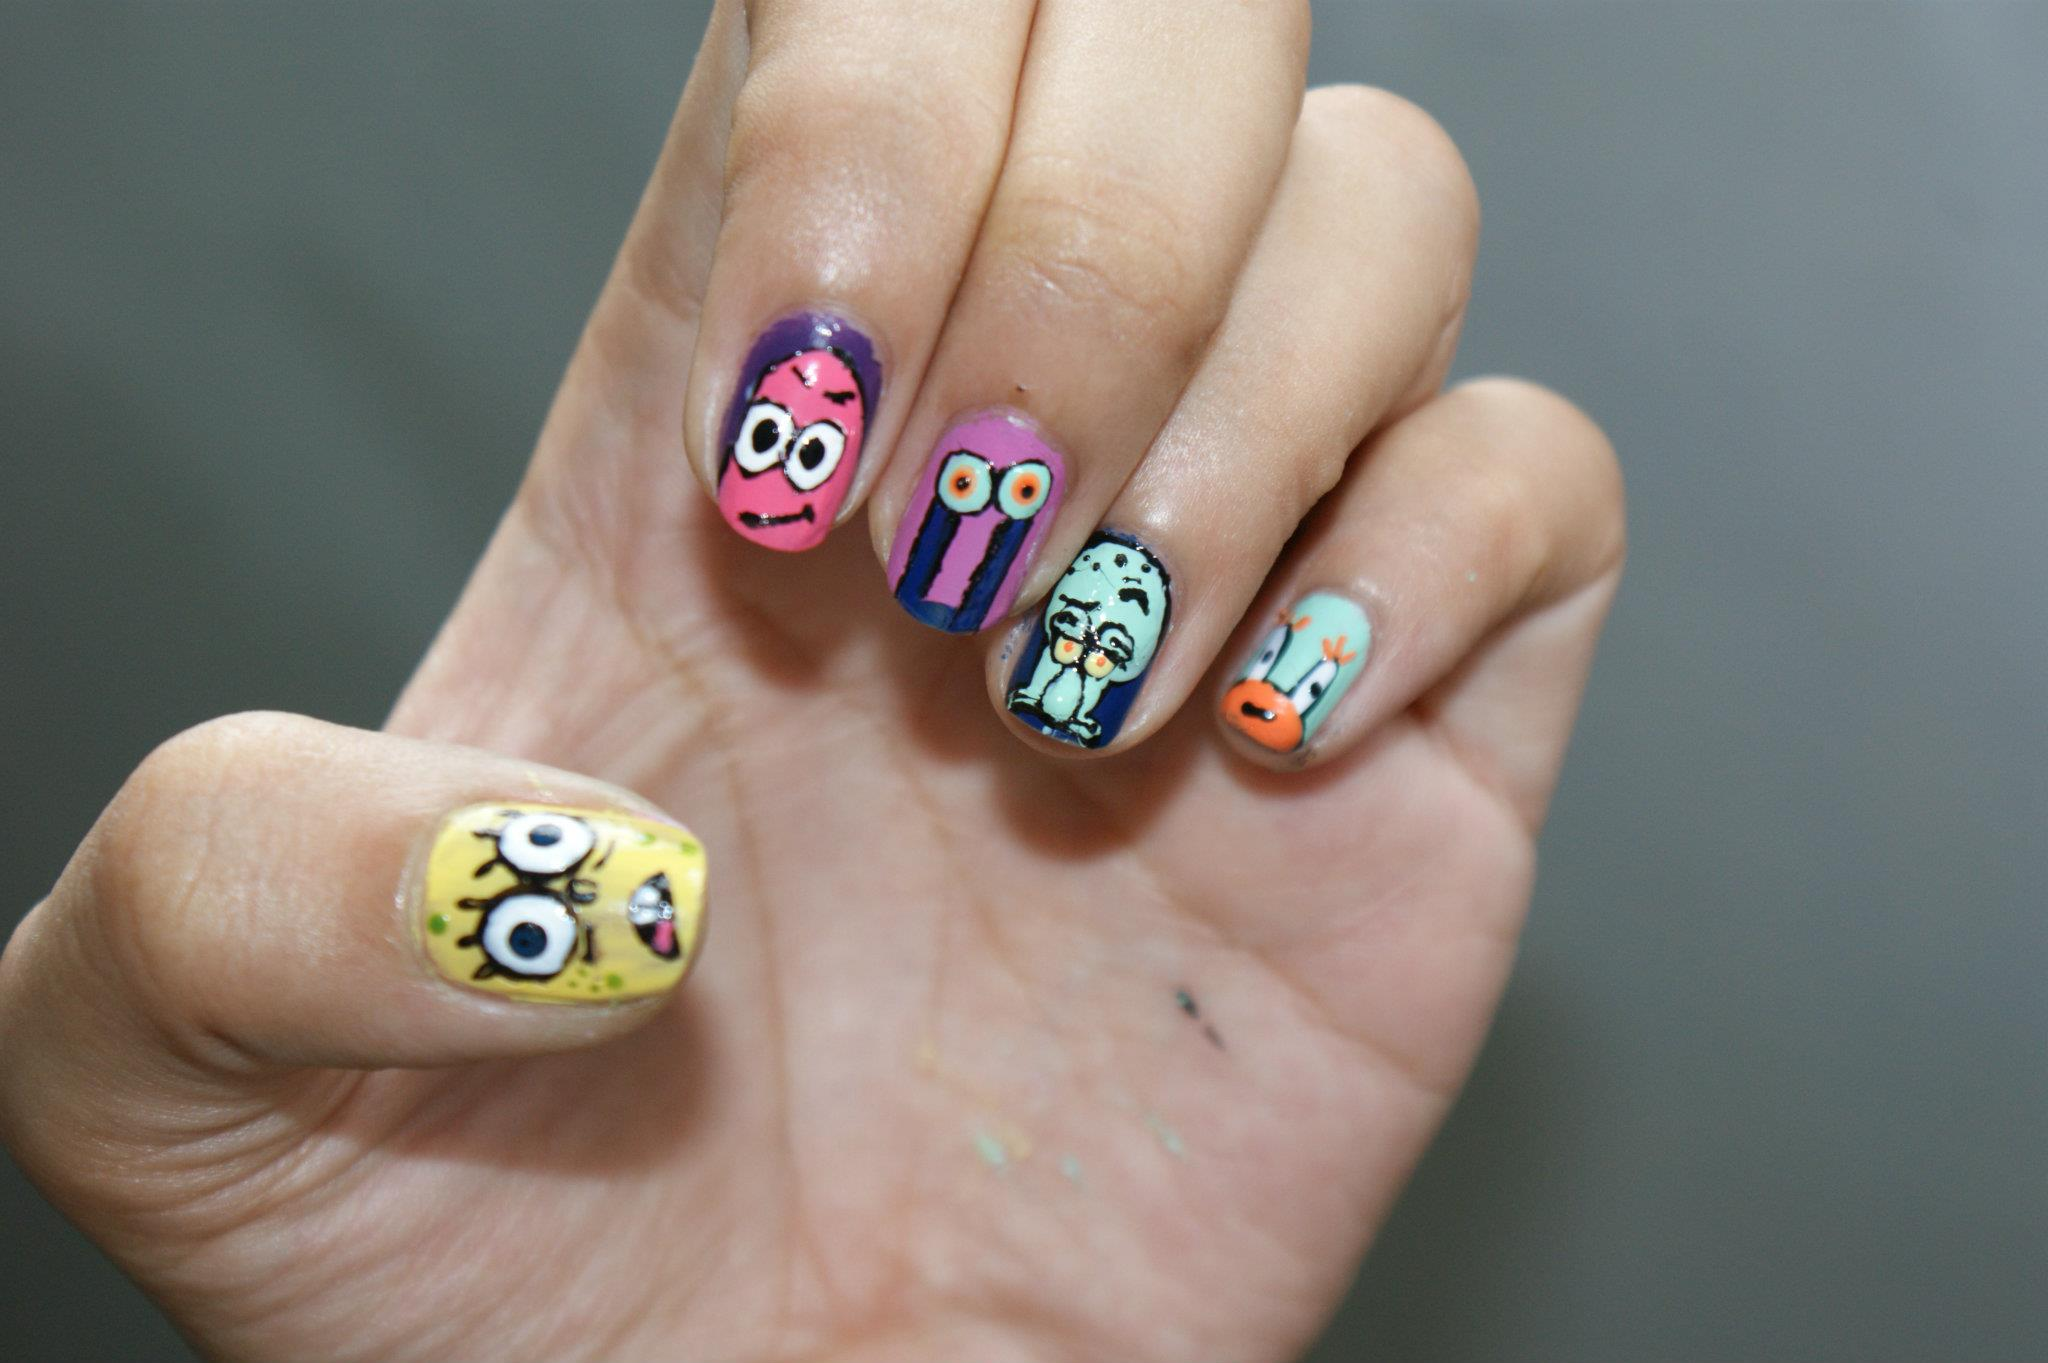 Nail Art Ideas: 30 Nail Art Ideas That You Will Love